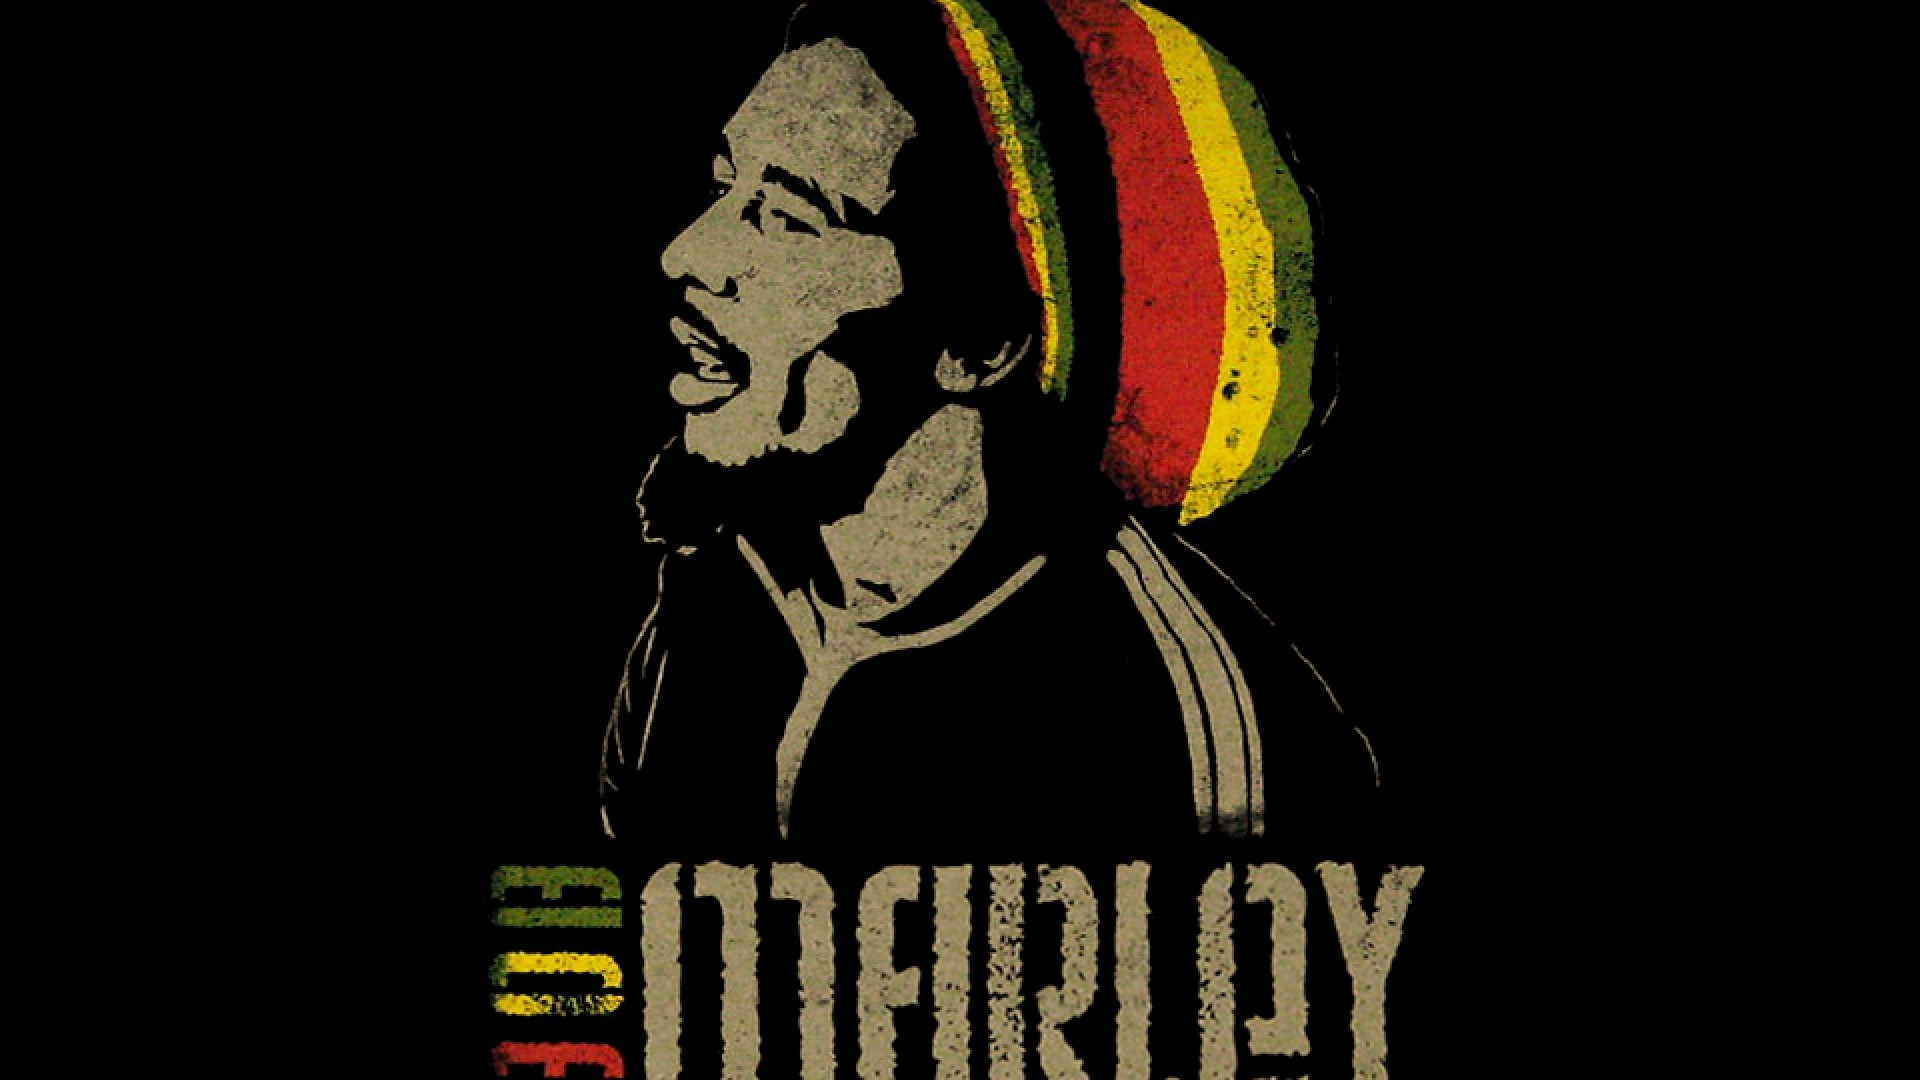 Images for Gt Reggae Iphone Wallpaper